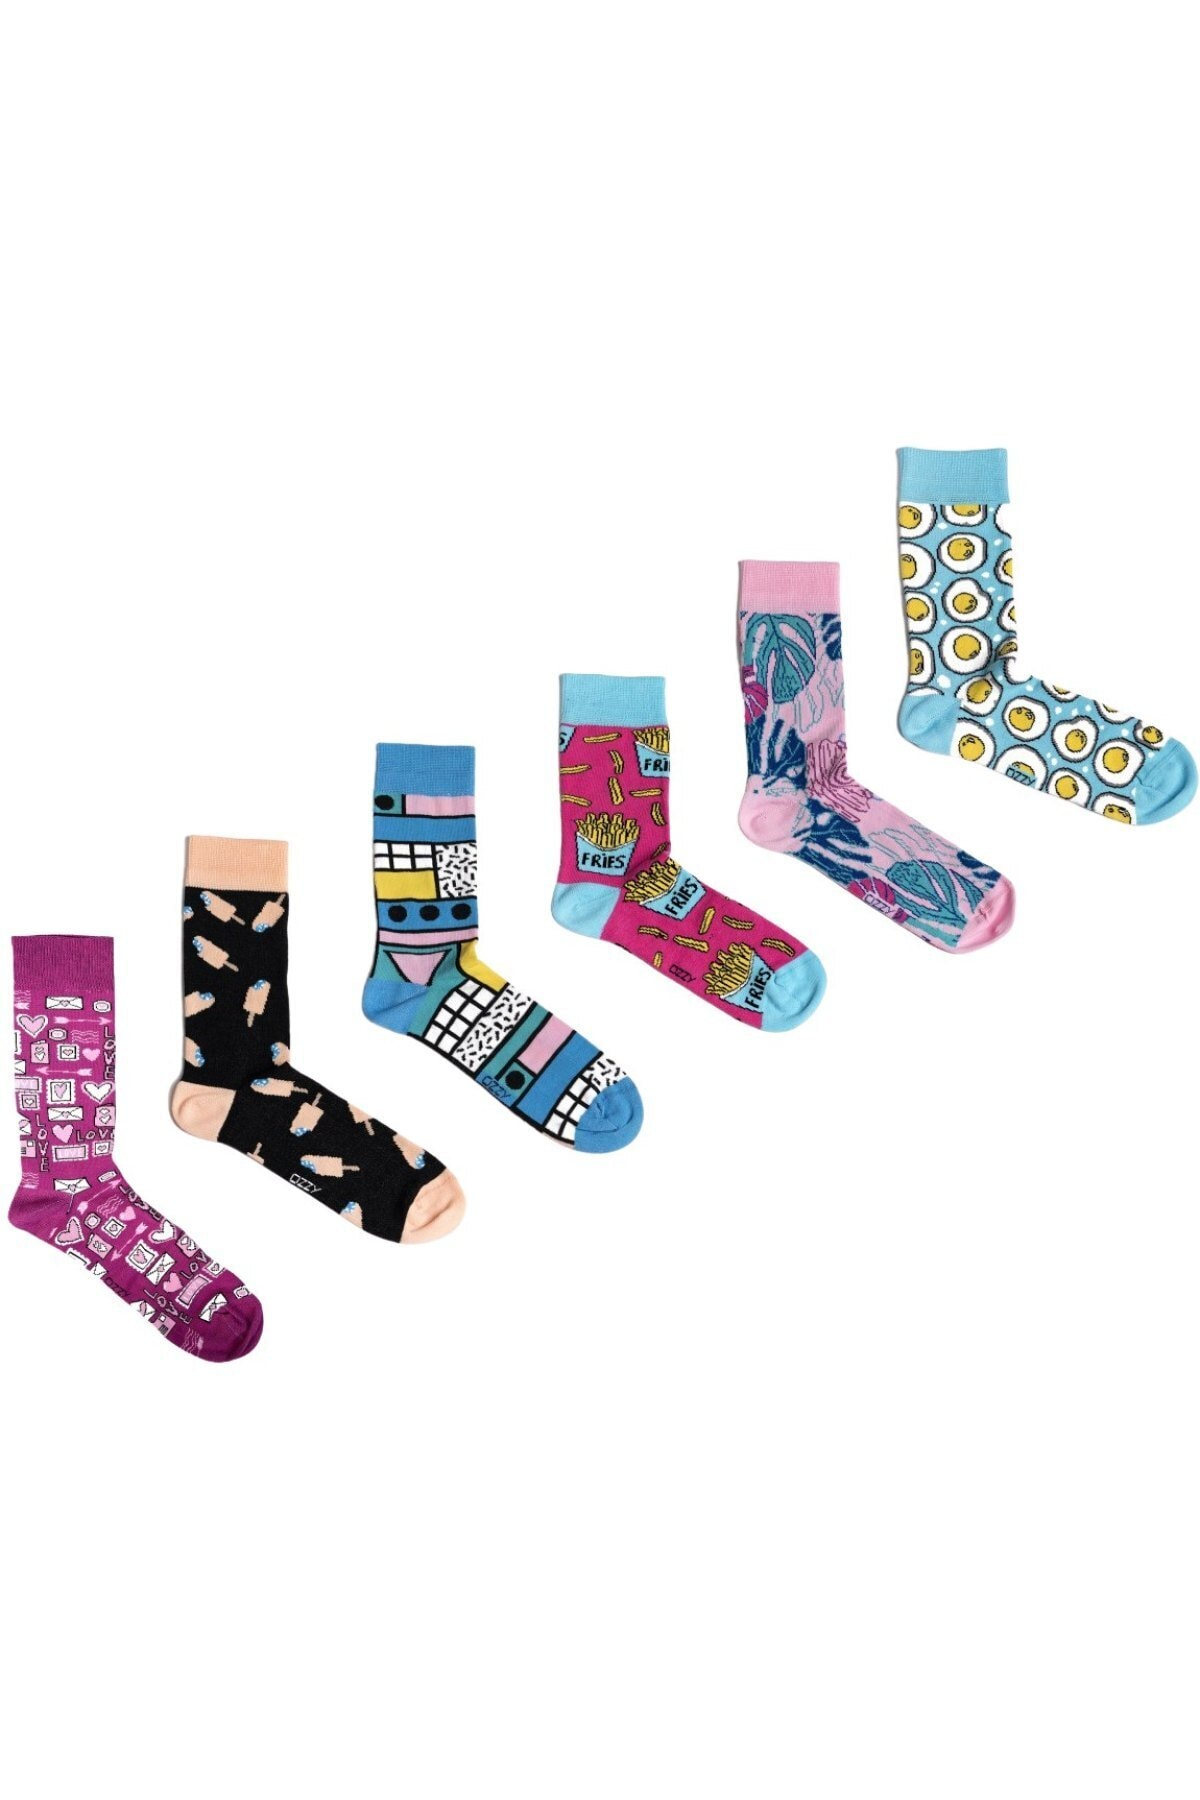 6 Pieces Organic Cotton Seamless Women's Multicolored Patterned Socks Daily Use Fun Patterns